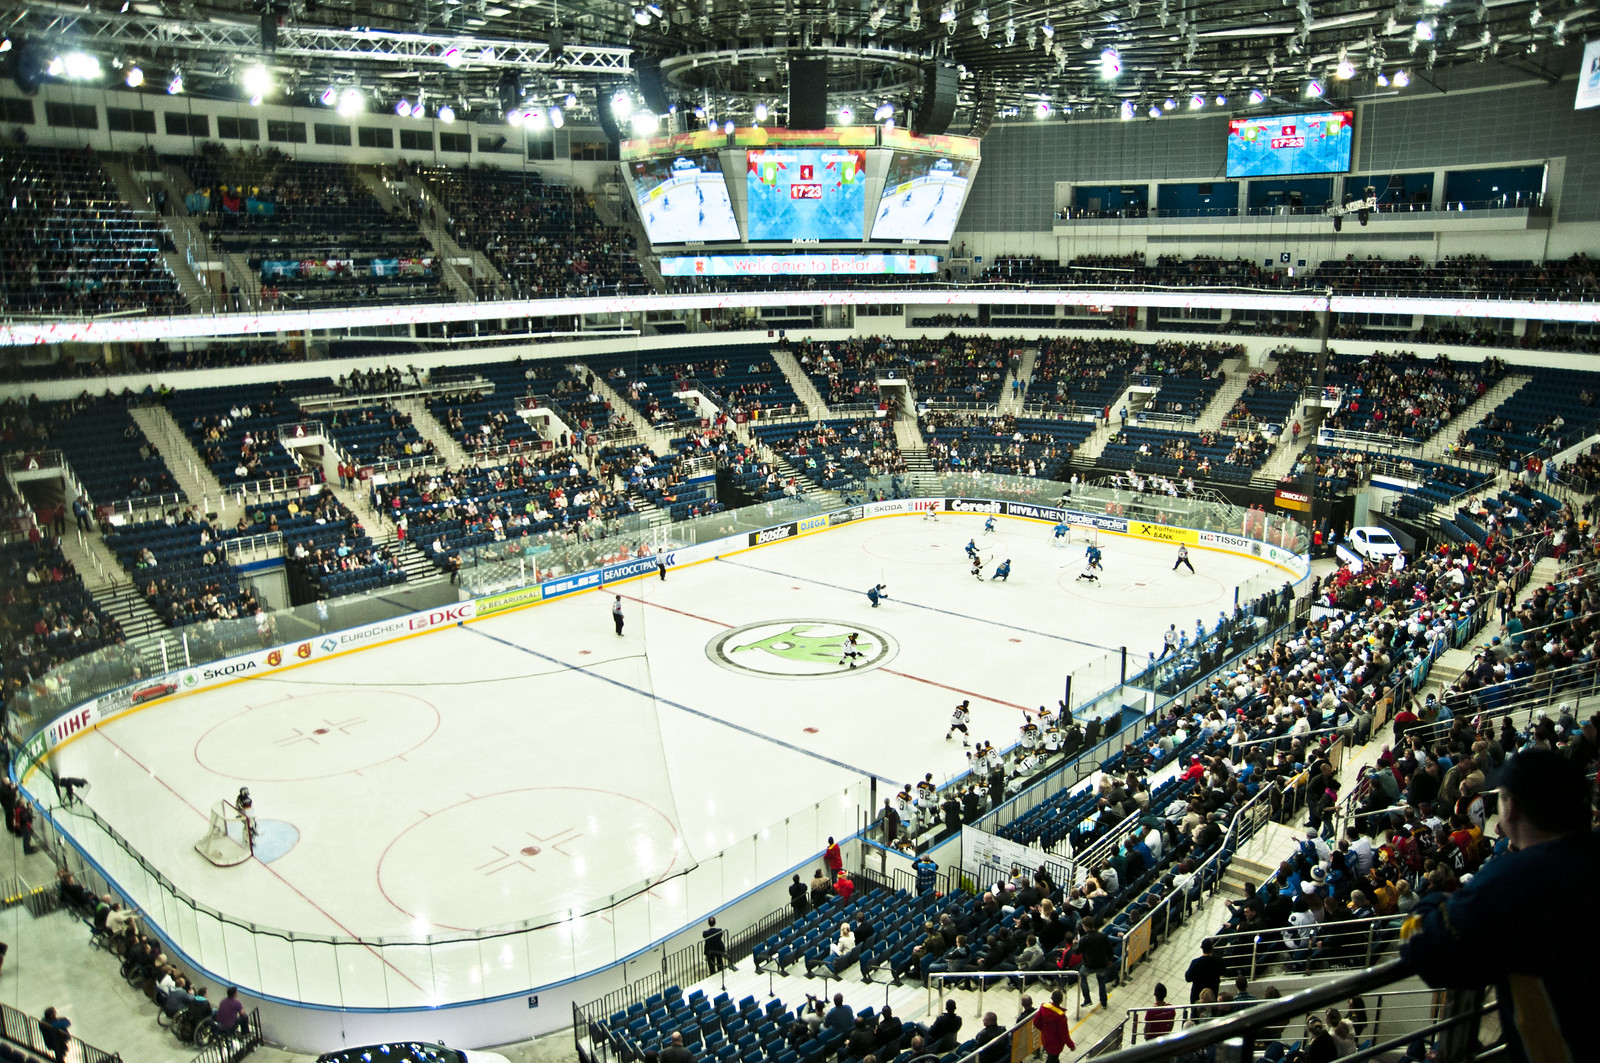 2014 IIHF World Championship